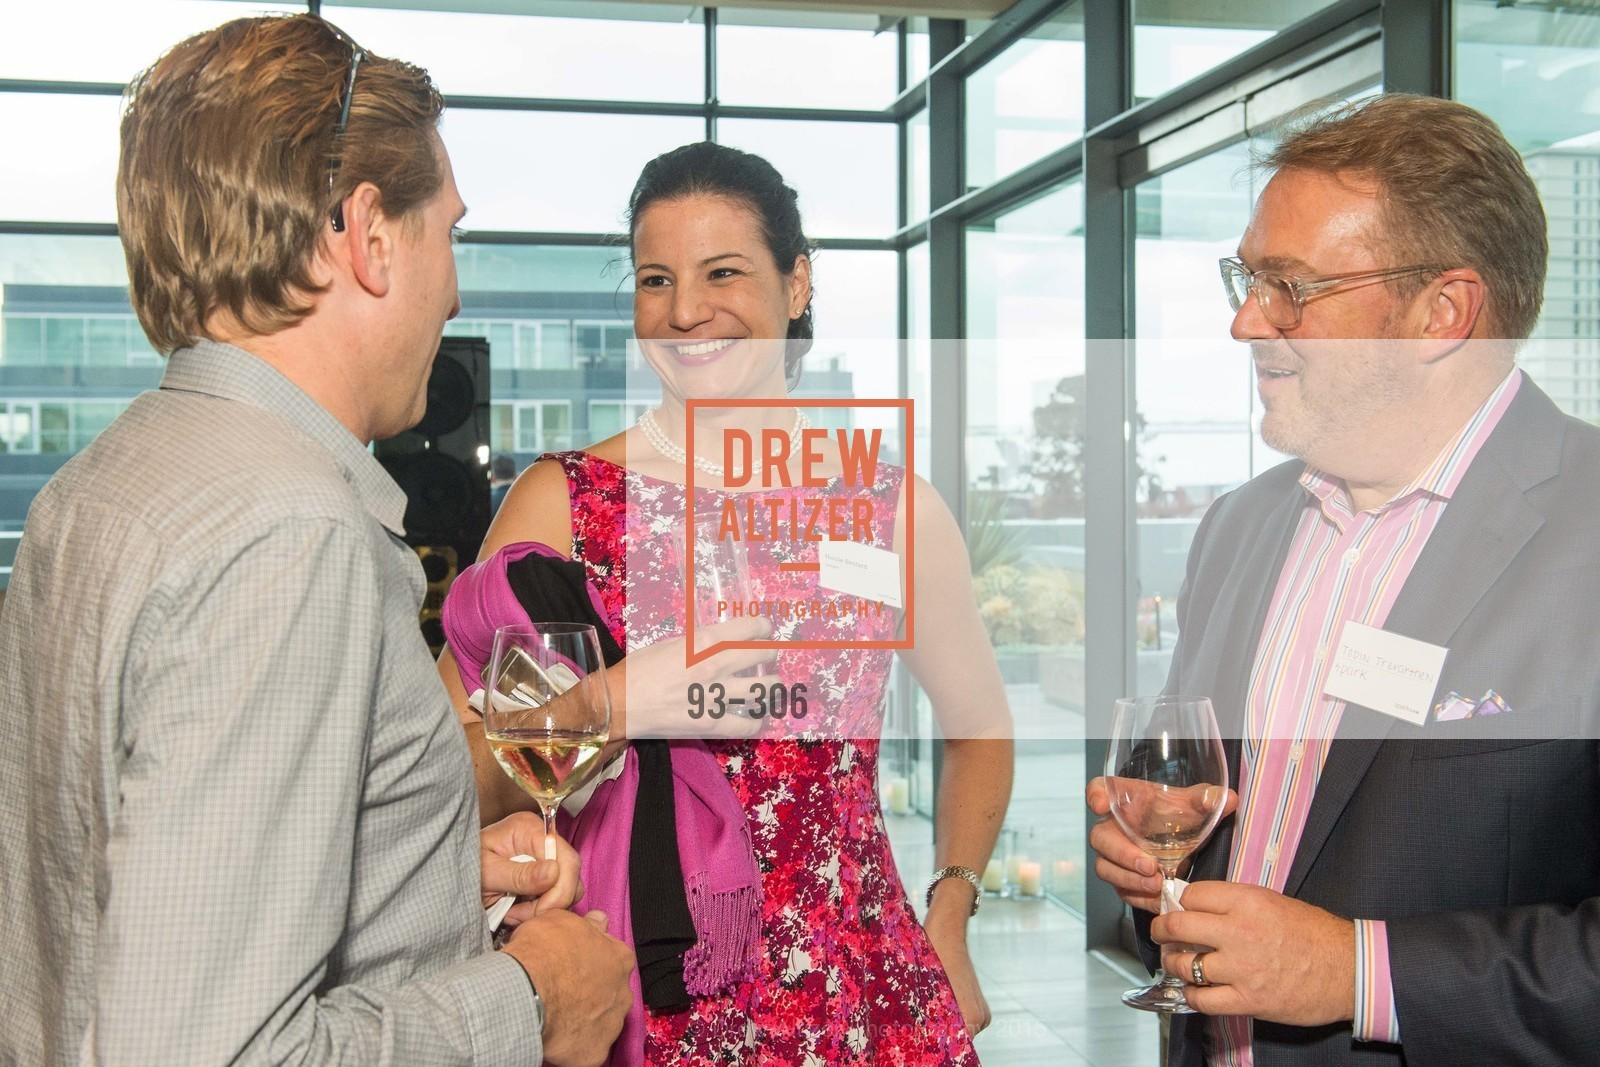 Nicole Bestard, Tobin Trevarthen, Sparkpr's Annual Rooftop Soirée, The Battery Penthouse, September 22nd, 2015,Drew Altizer, Drew Altizer Photography, full-service agency, private events, San Francisco photographer, photographer california